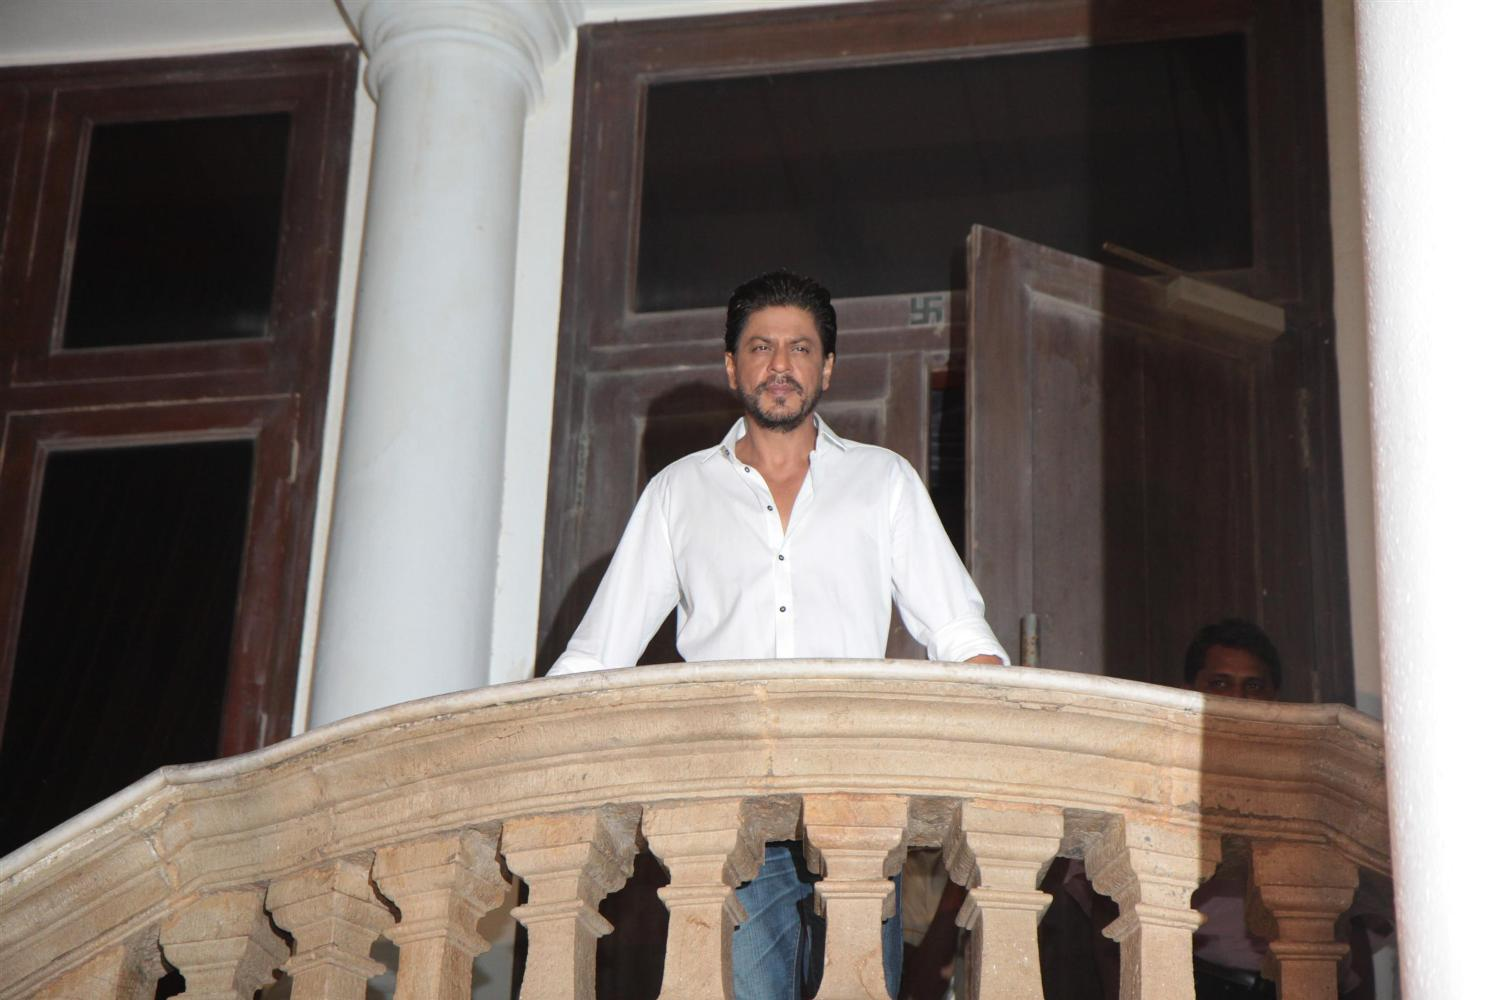 His presence turns Mannat into Jannat to us �� https://t.co/tBW4QKdcTY